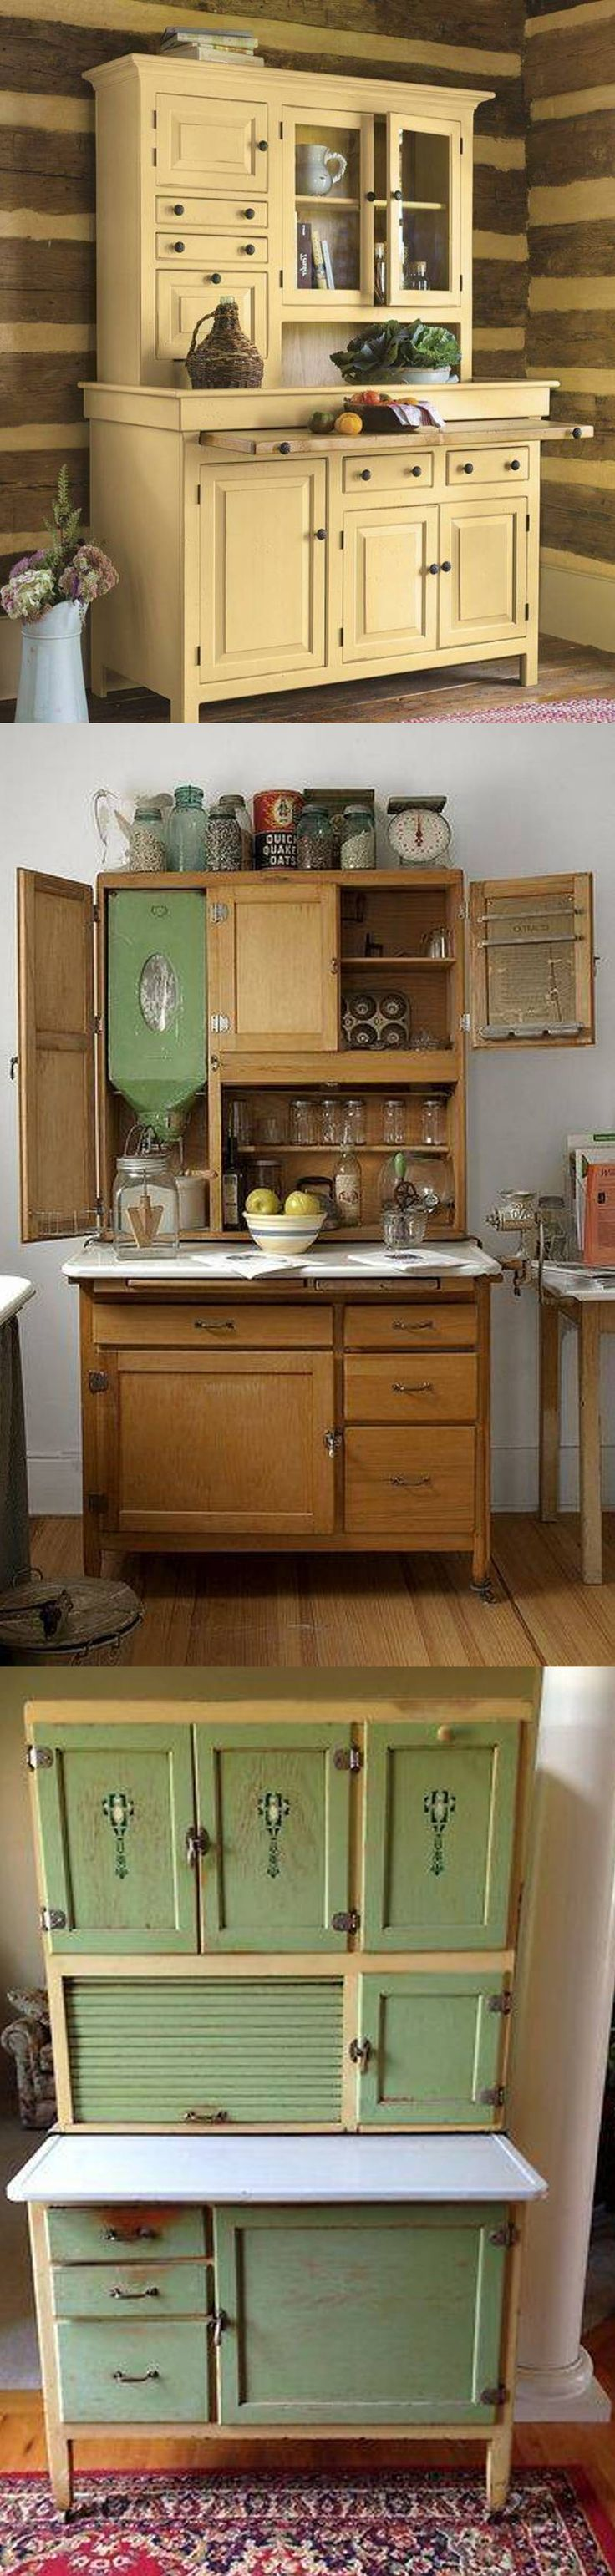 Hoosier Cabinets 1898 1940 Were Compact Free Standing